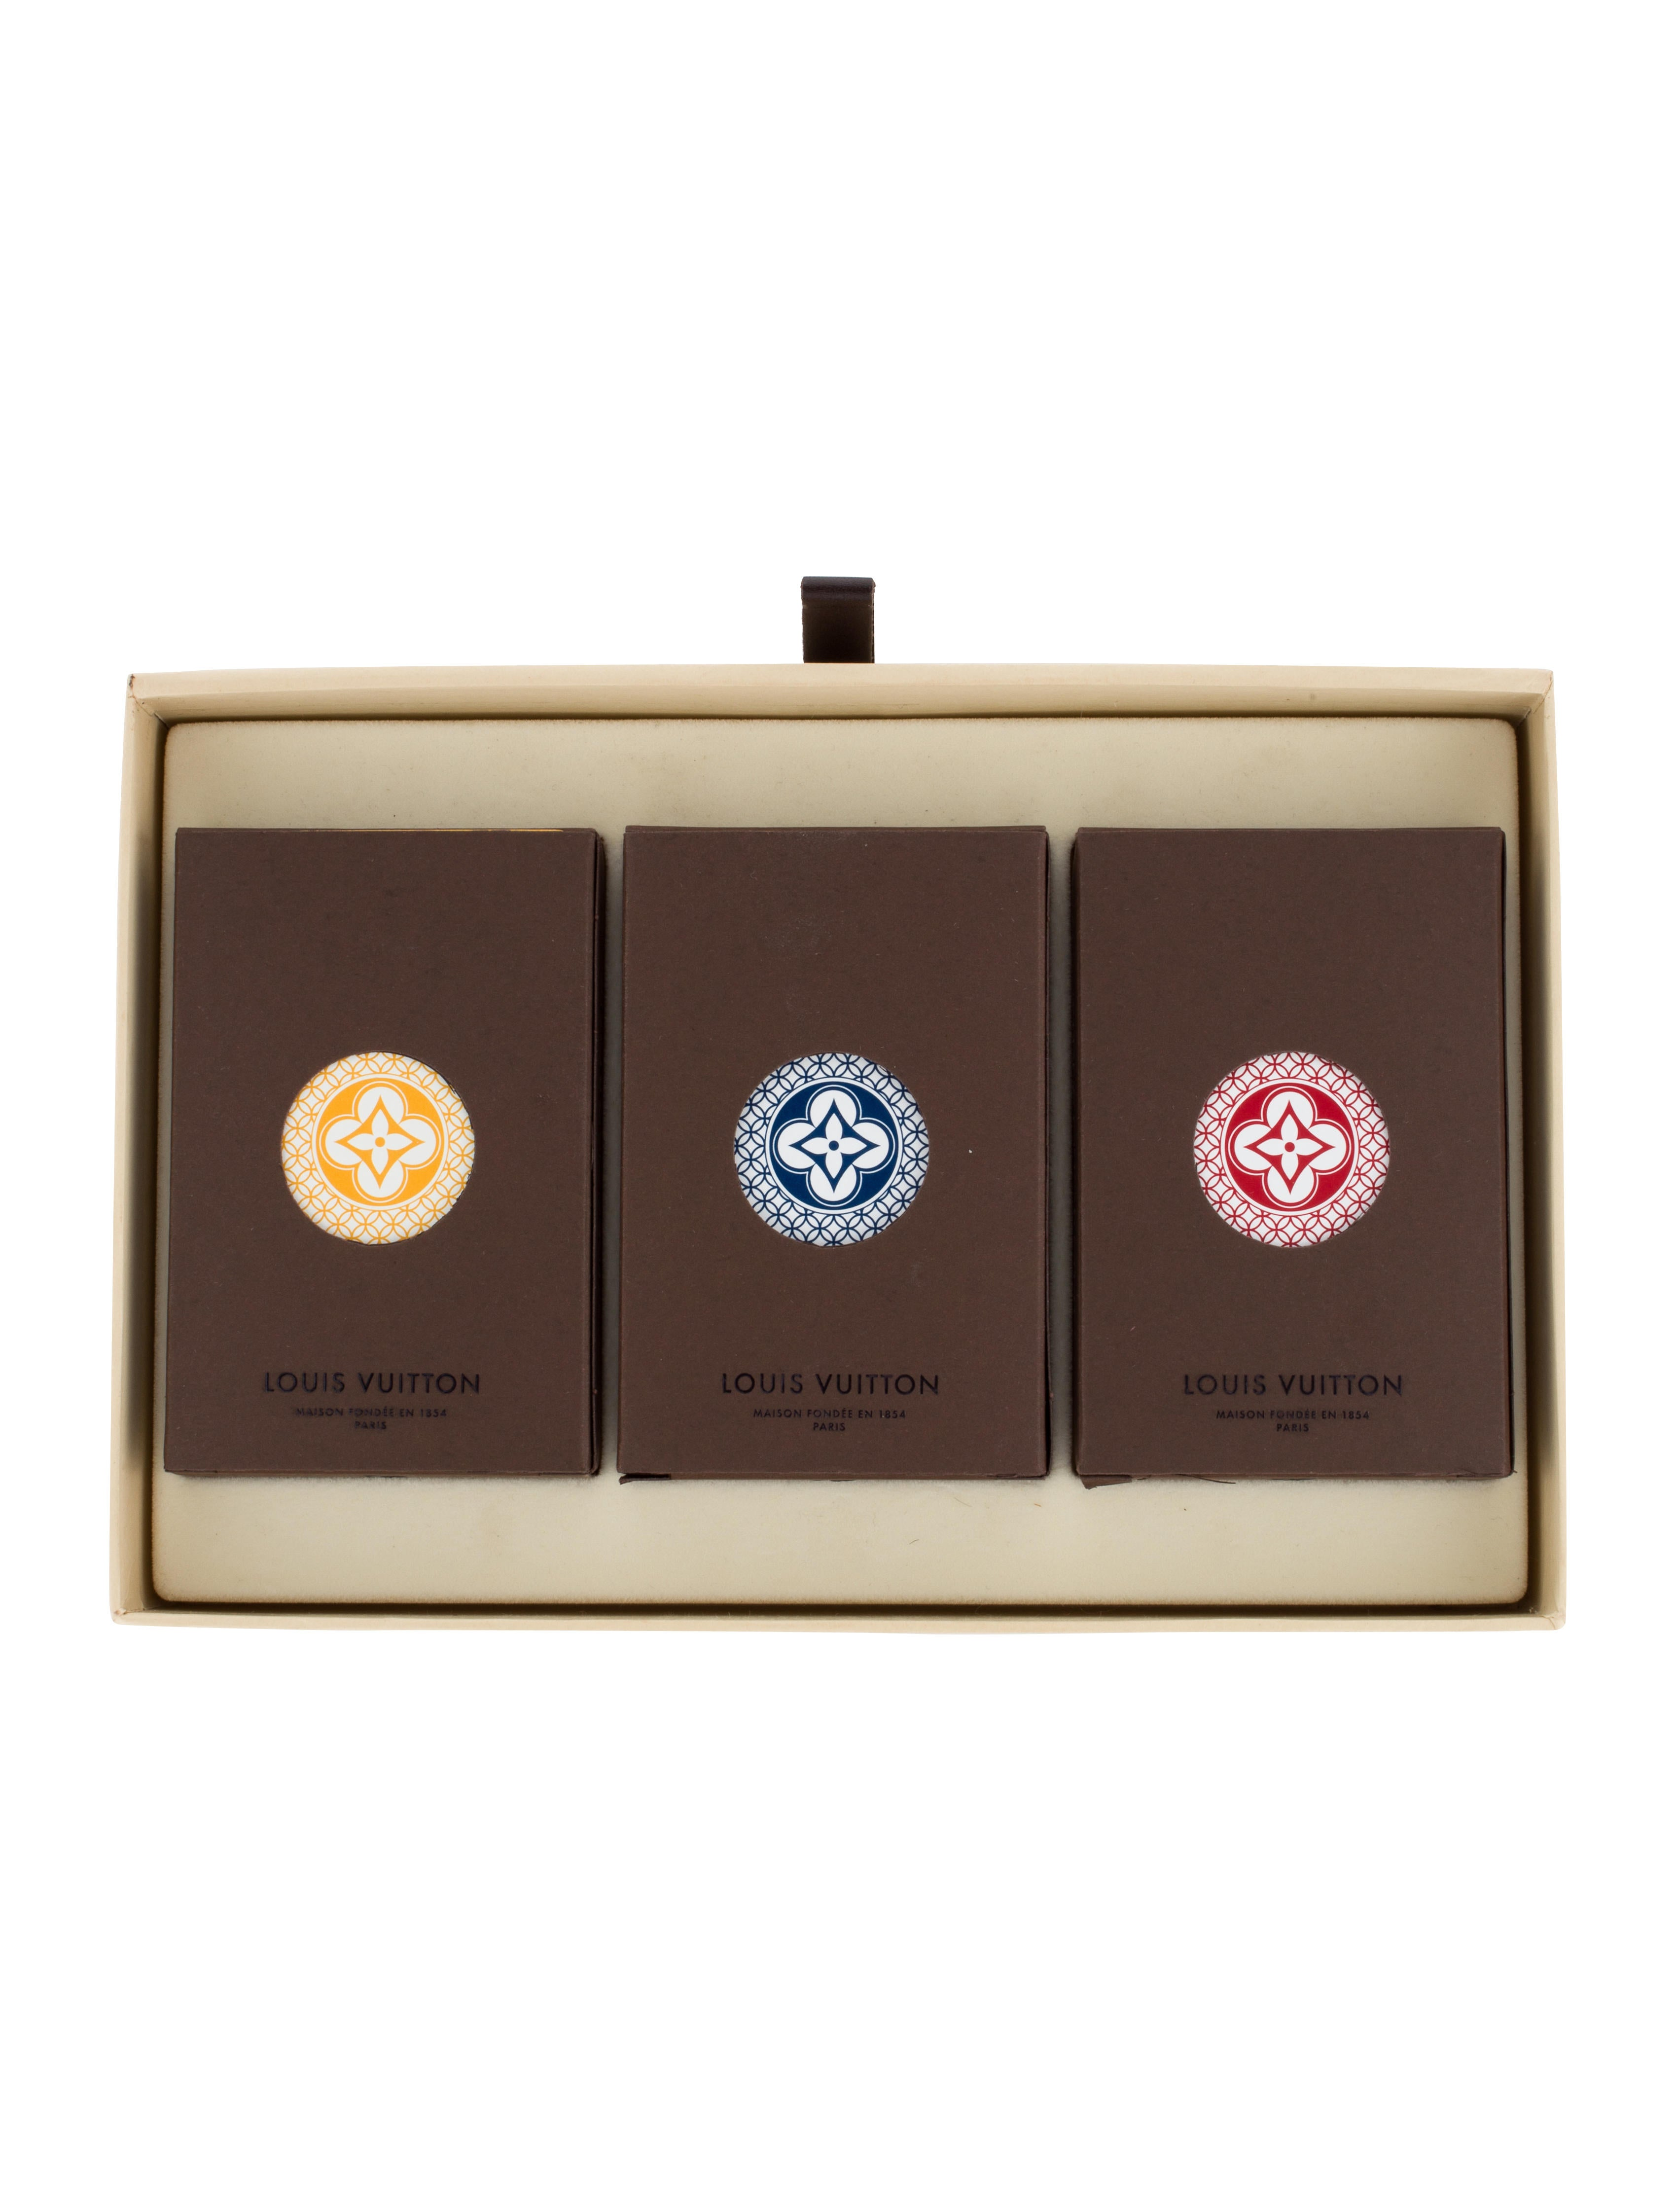 Louis vuitton set of three playing card set decor and for Table 52 cards